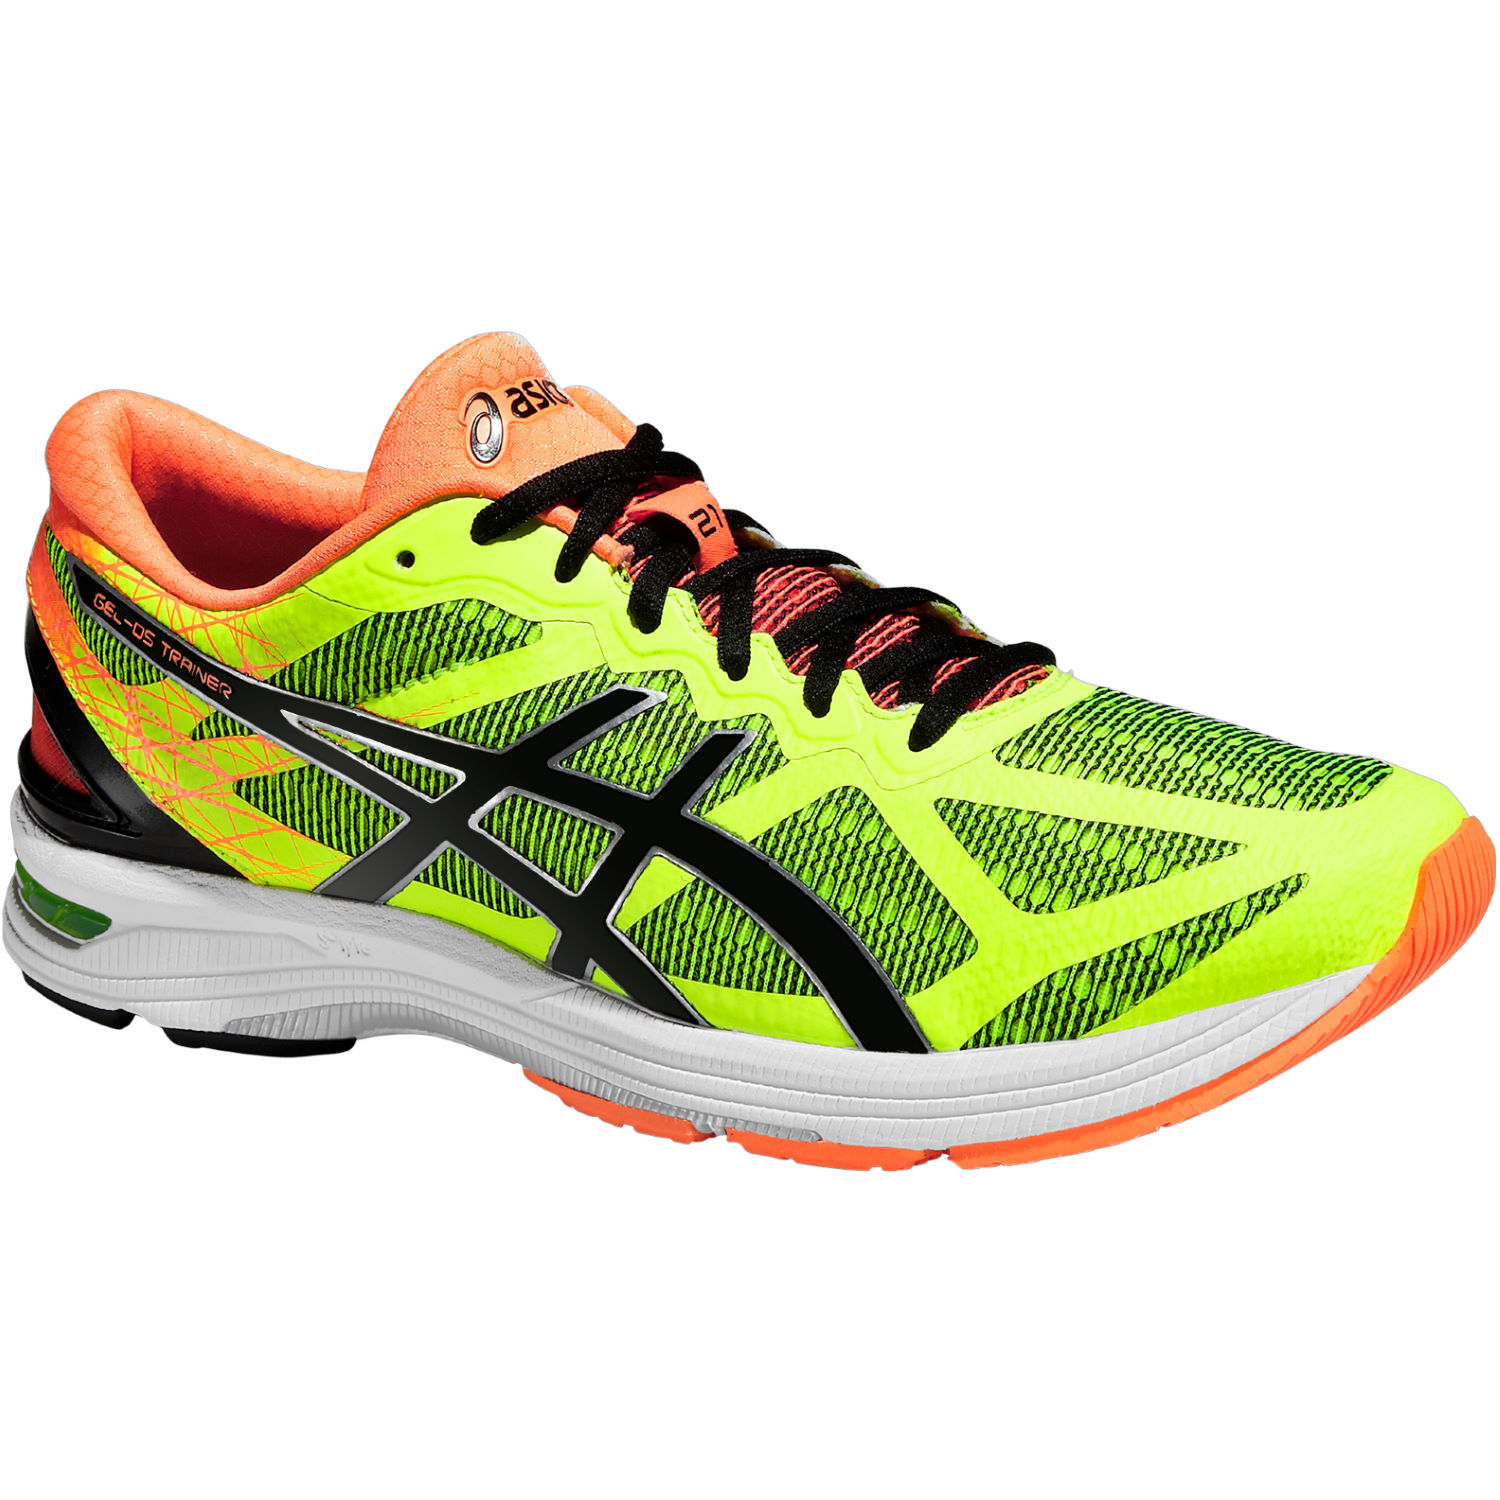 Sport Shoes Website Reviews